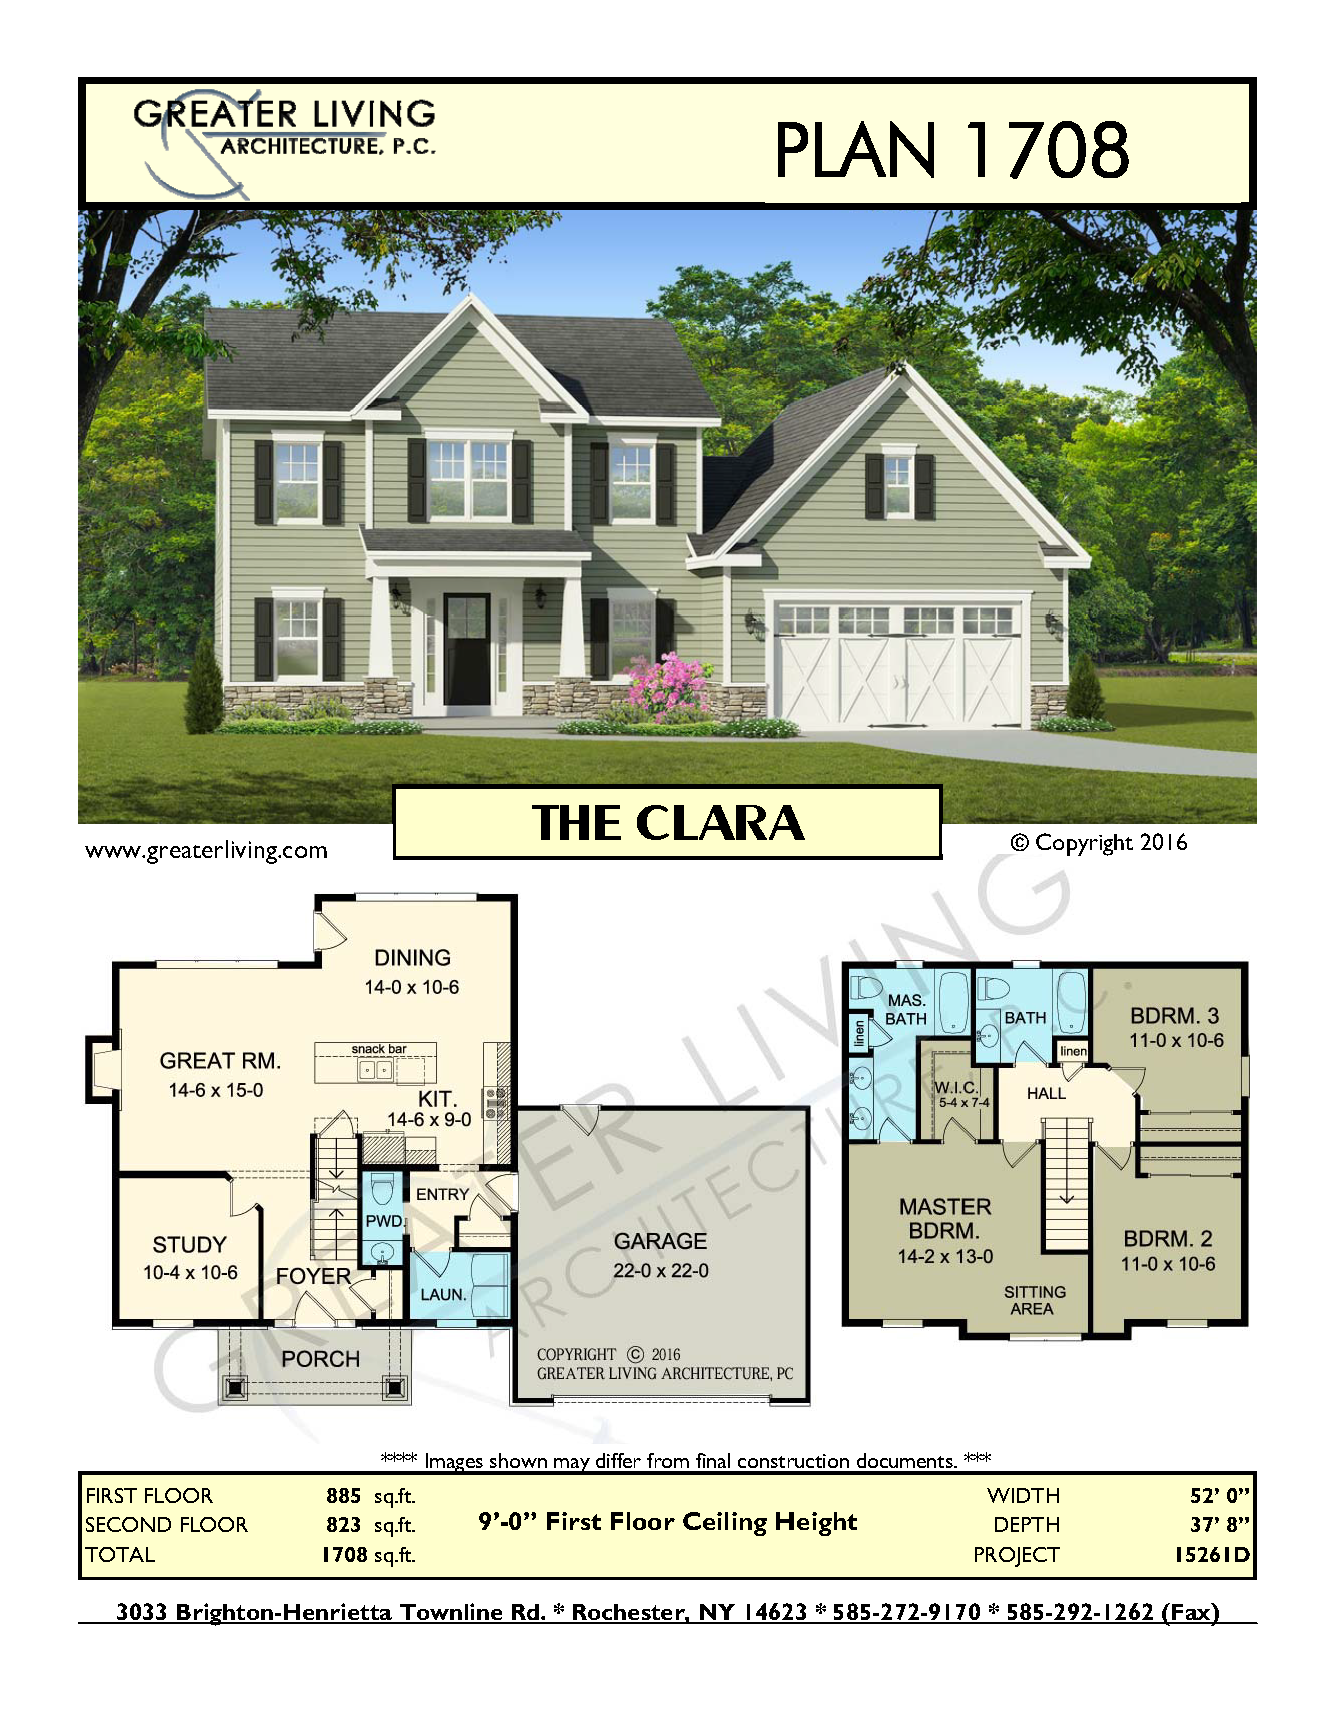 Plan 1708: THE CLARA  Two Story House Plan   Greater Living Architecture    Residential Architecture